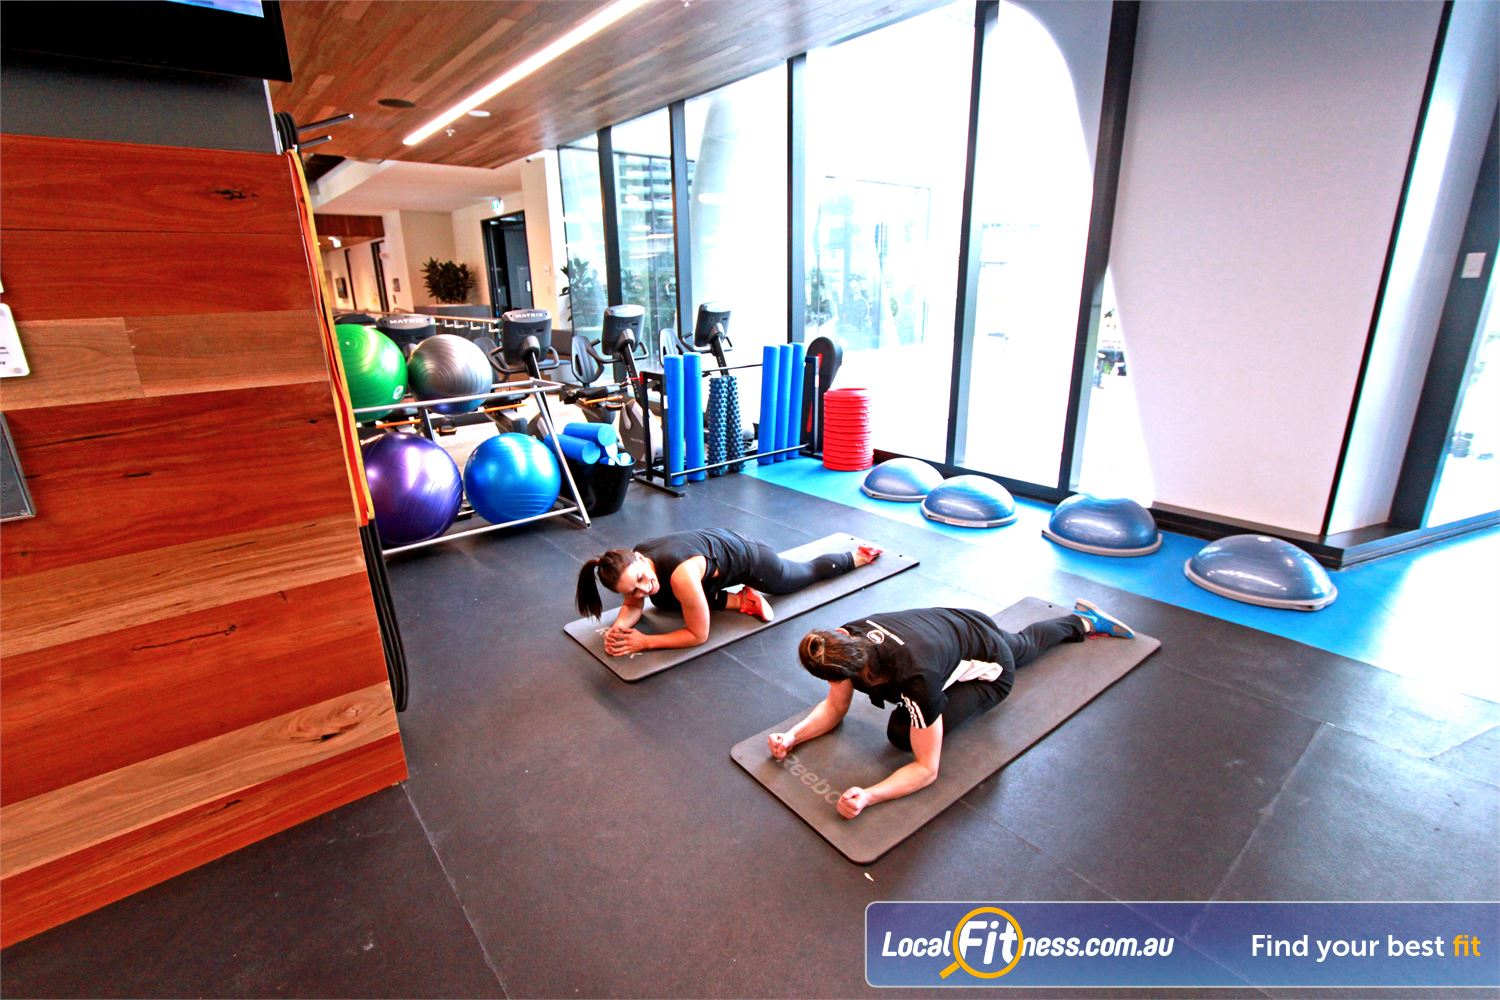 Goodlife Health Clubs Docklands Bosu balls, fitballs, foam rollers, stretching mats and more.